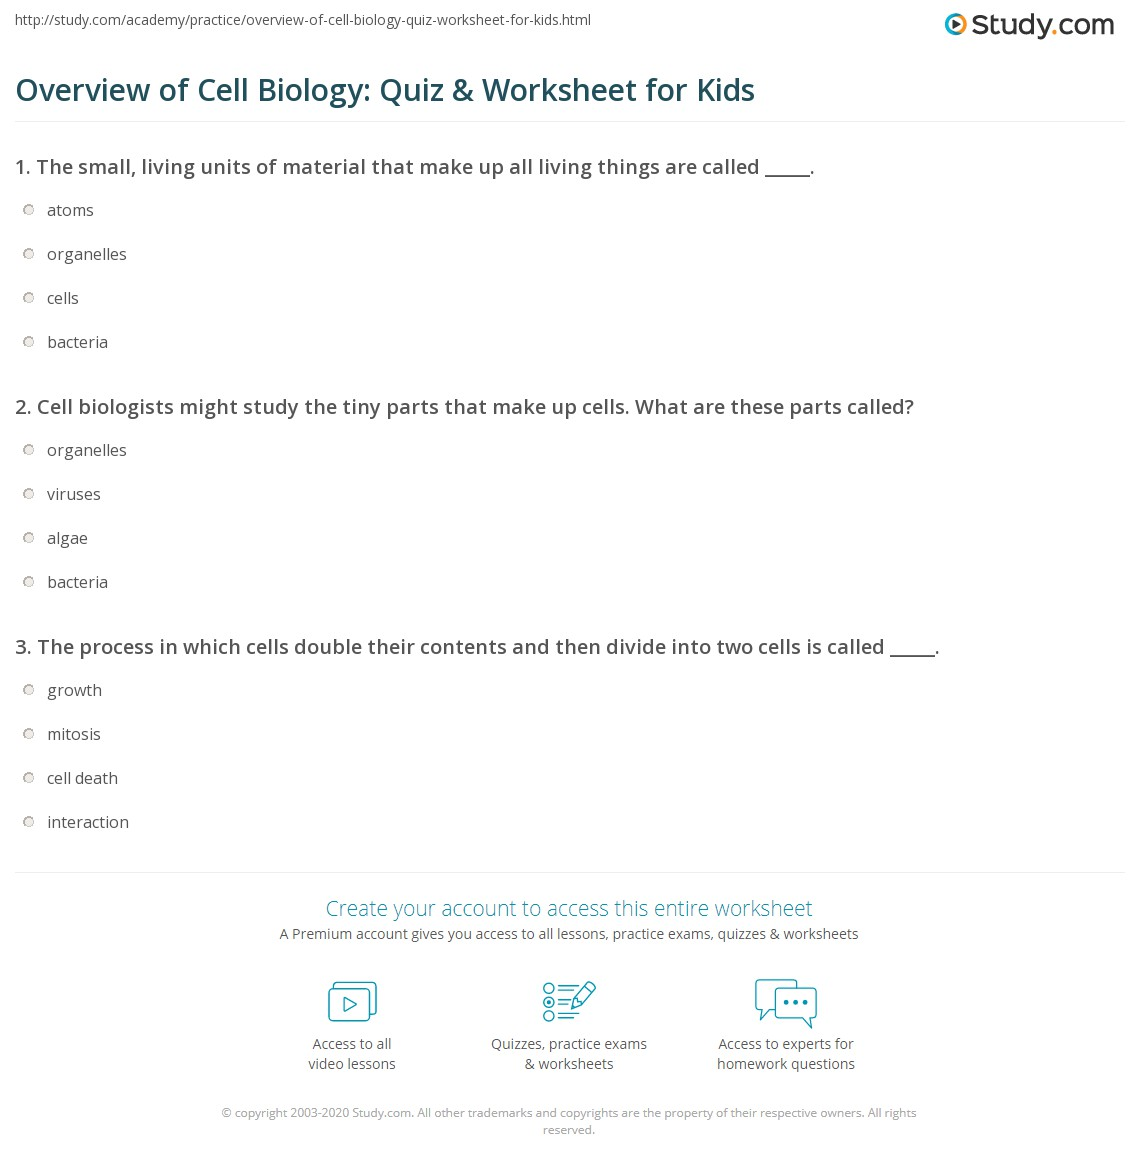 Overview Of Cell Biology Quiz Amp Worksheet For Kids